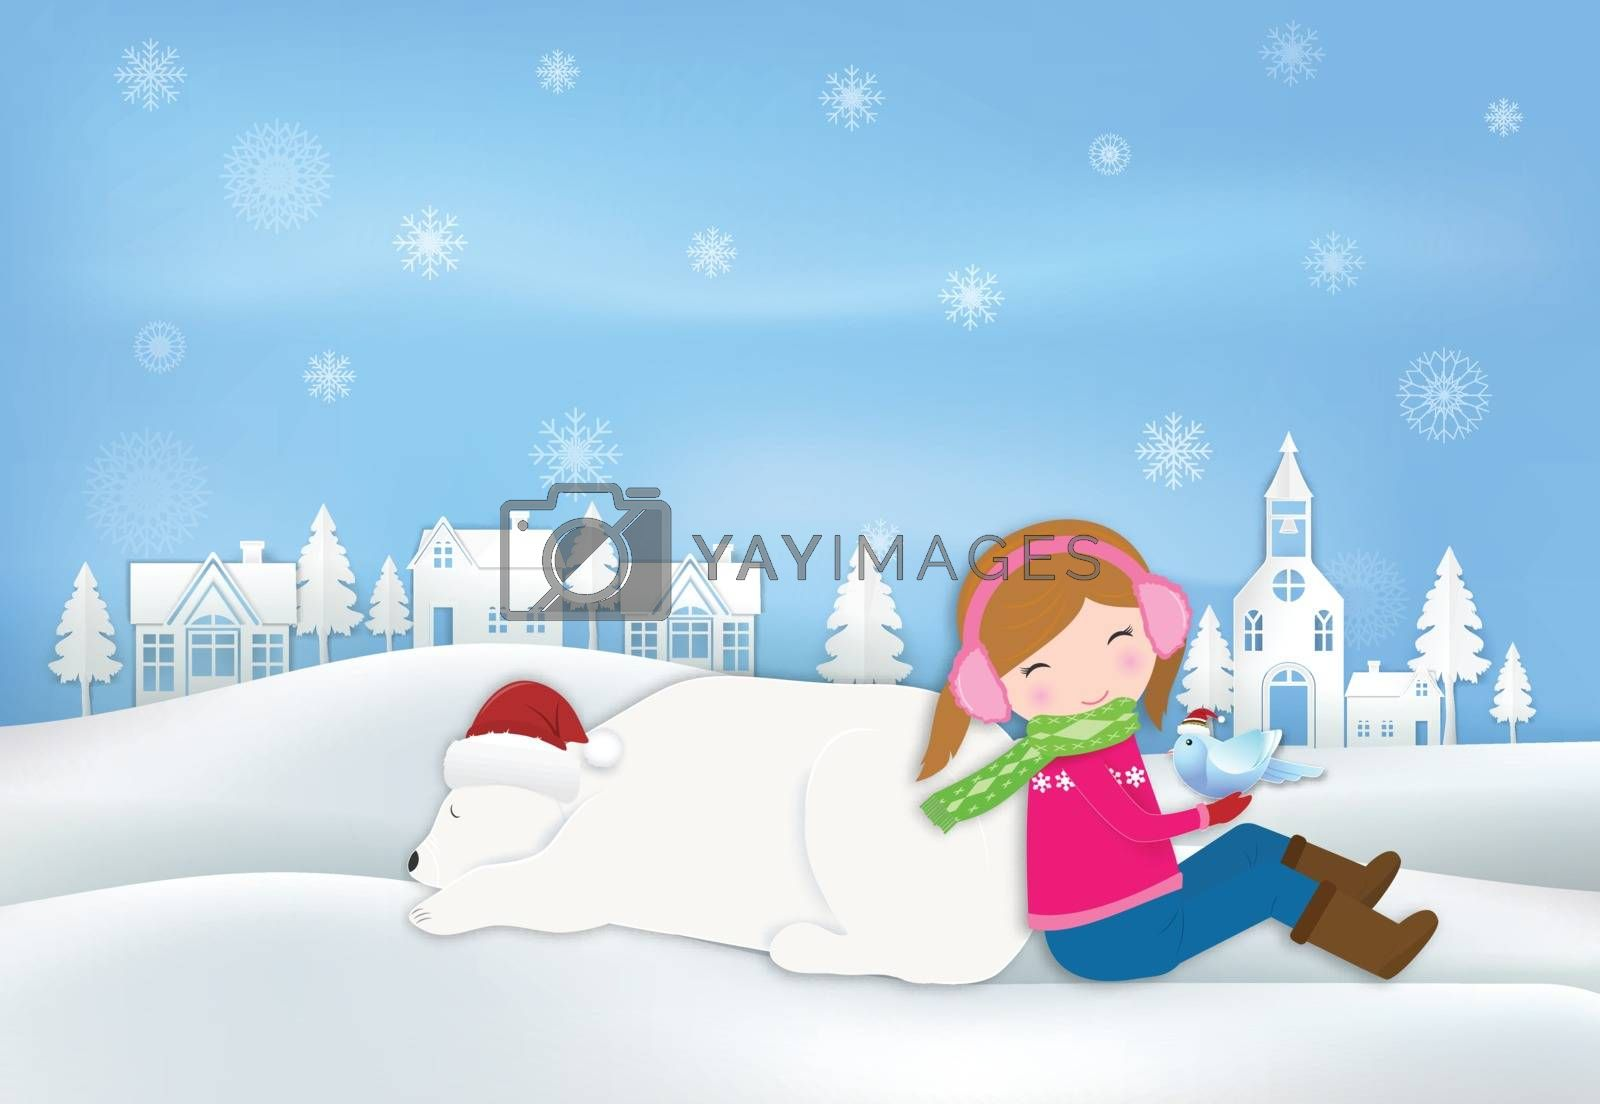 Paper art of Girl, Polar bear and bird at village in countryside illustration, Christmas season winter holiday paper craft background.